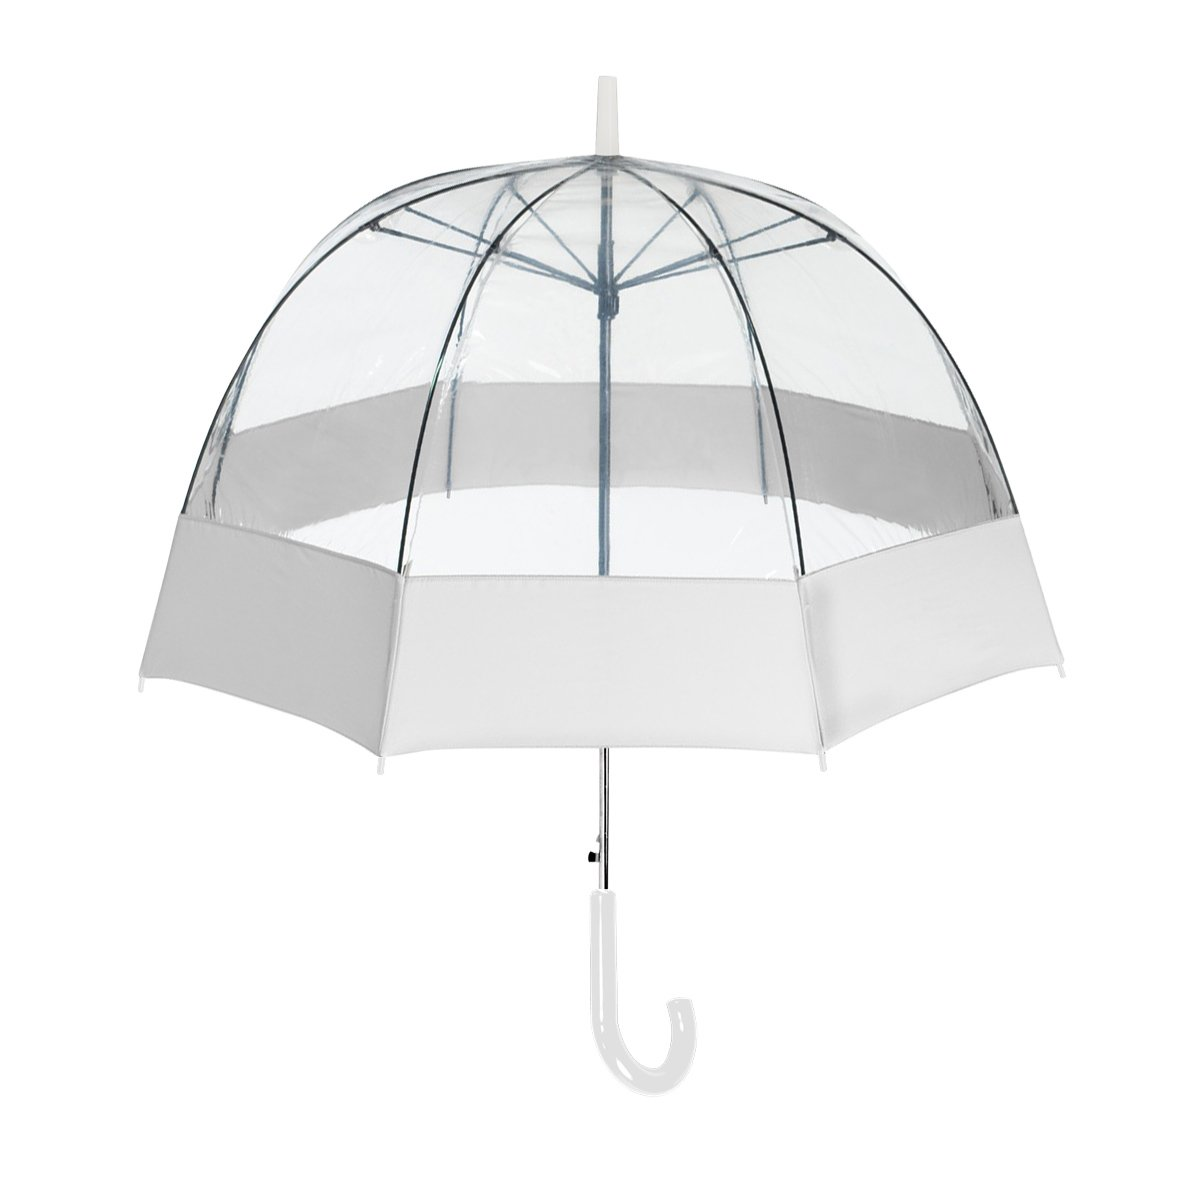 ShedRain® Auto Open Bubble With Sewn Fabric Border: White and Clear free shipping